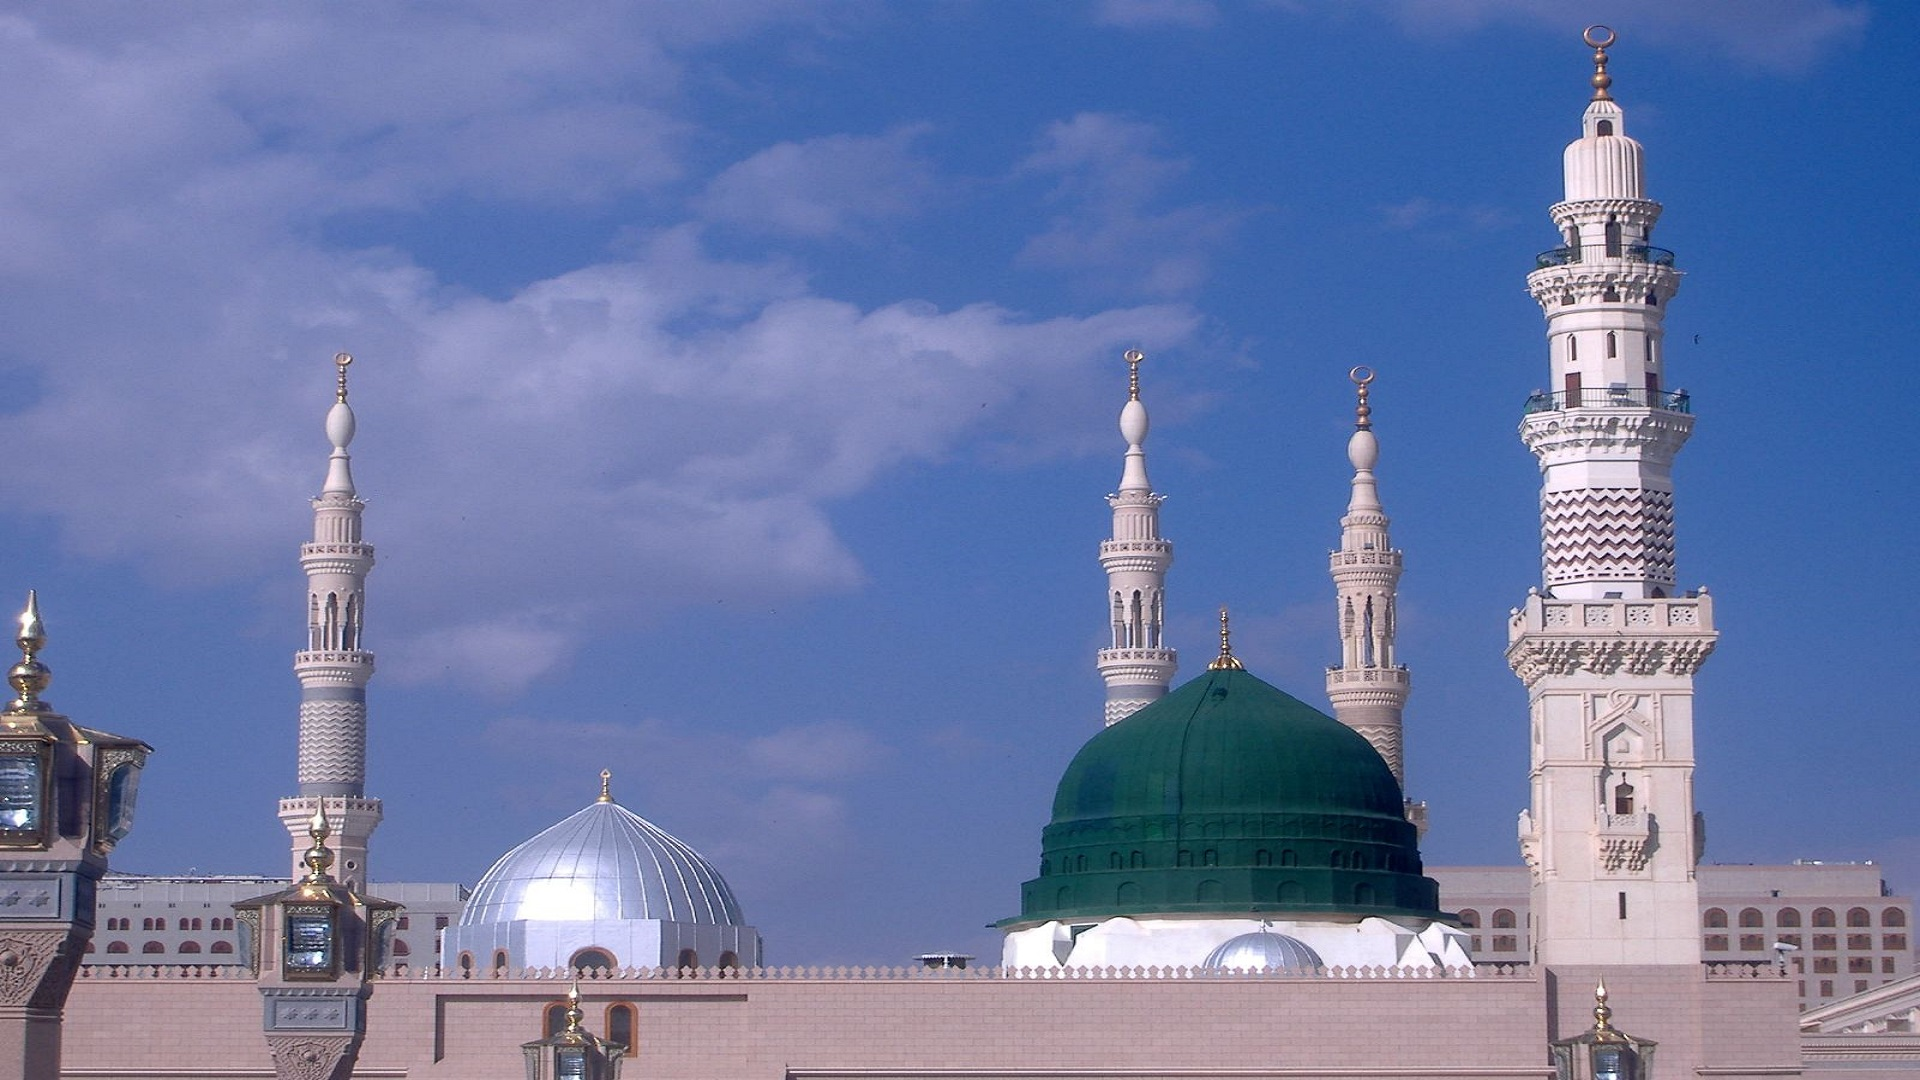 3d Masjid Wallpapers Hd Free Madina Shareef Top Best Place Wallpapers Hd